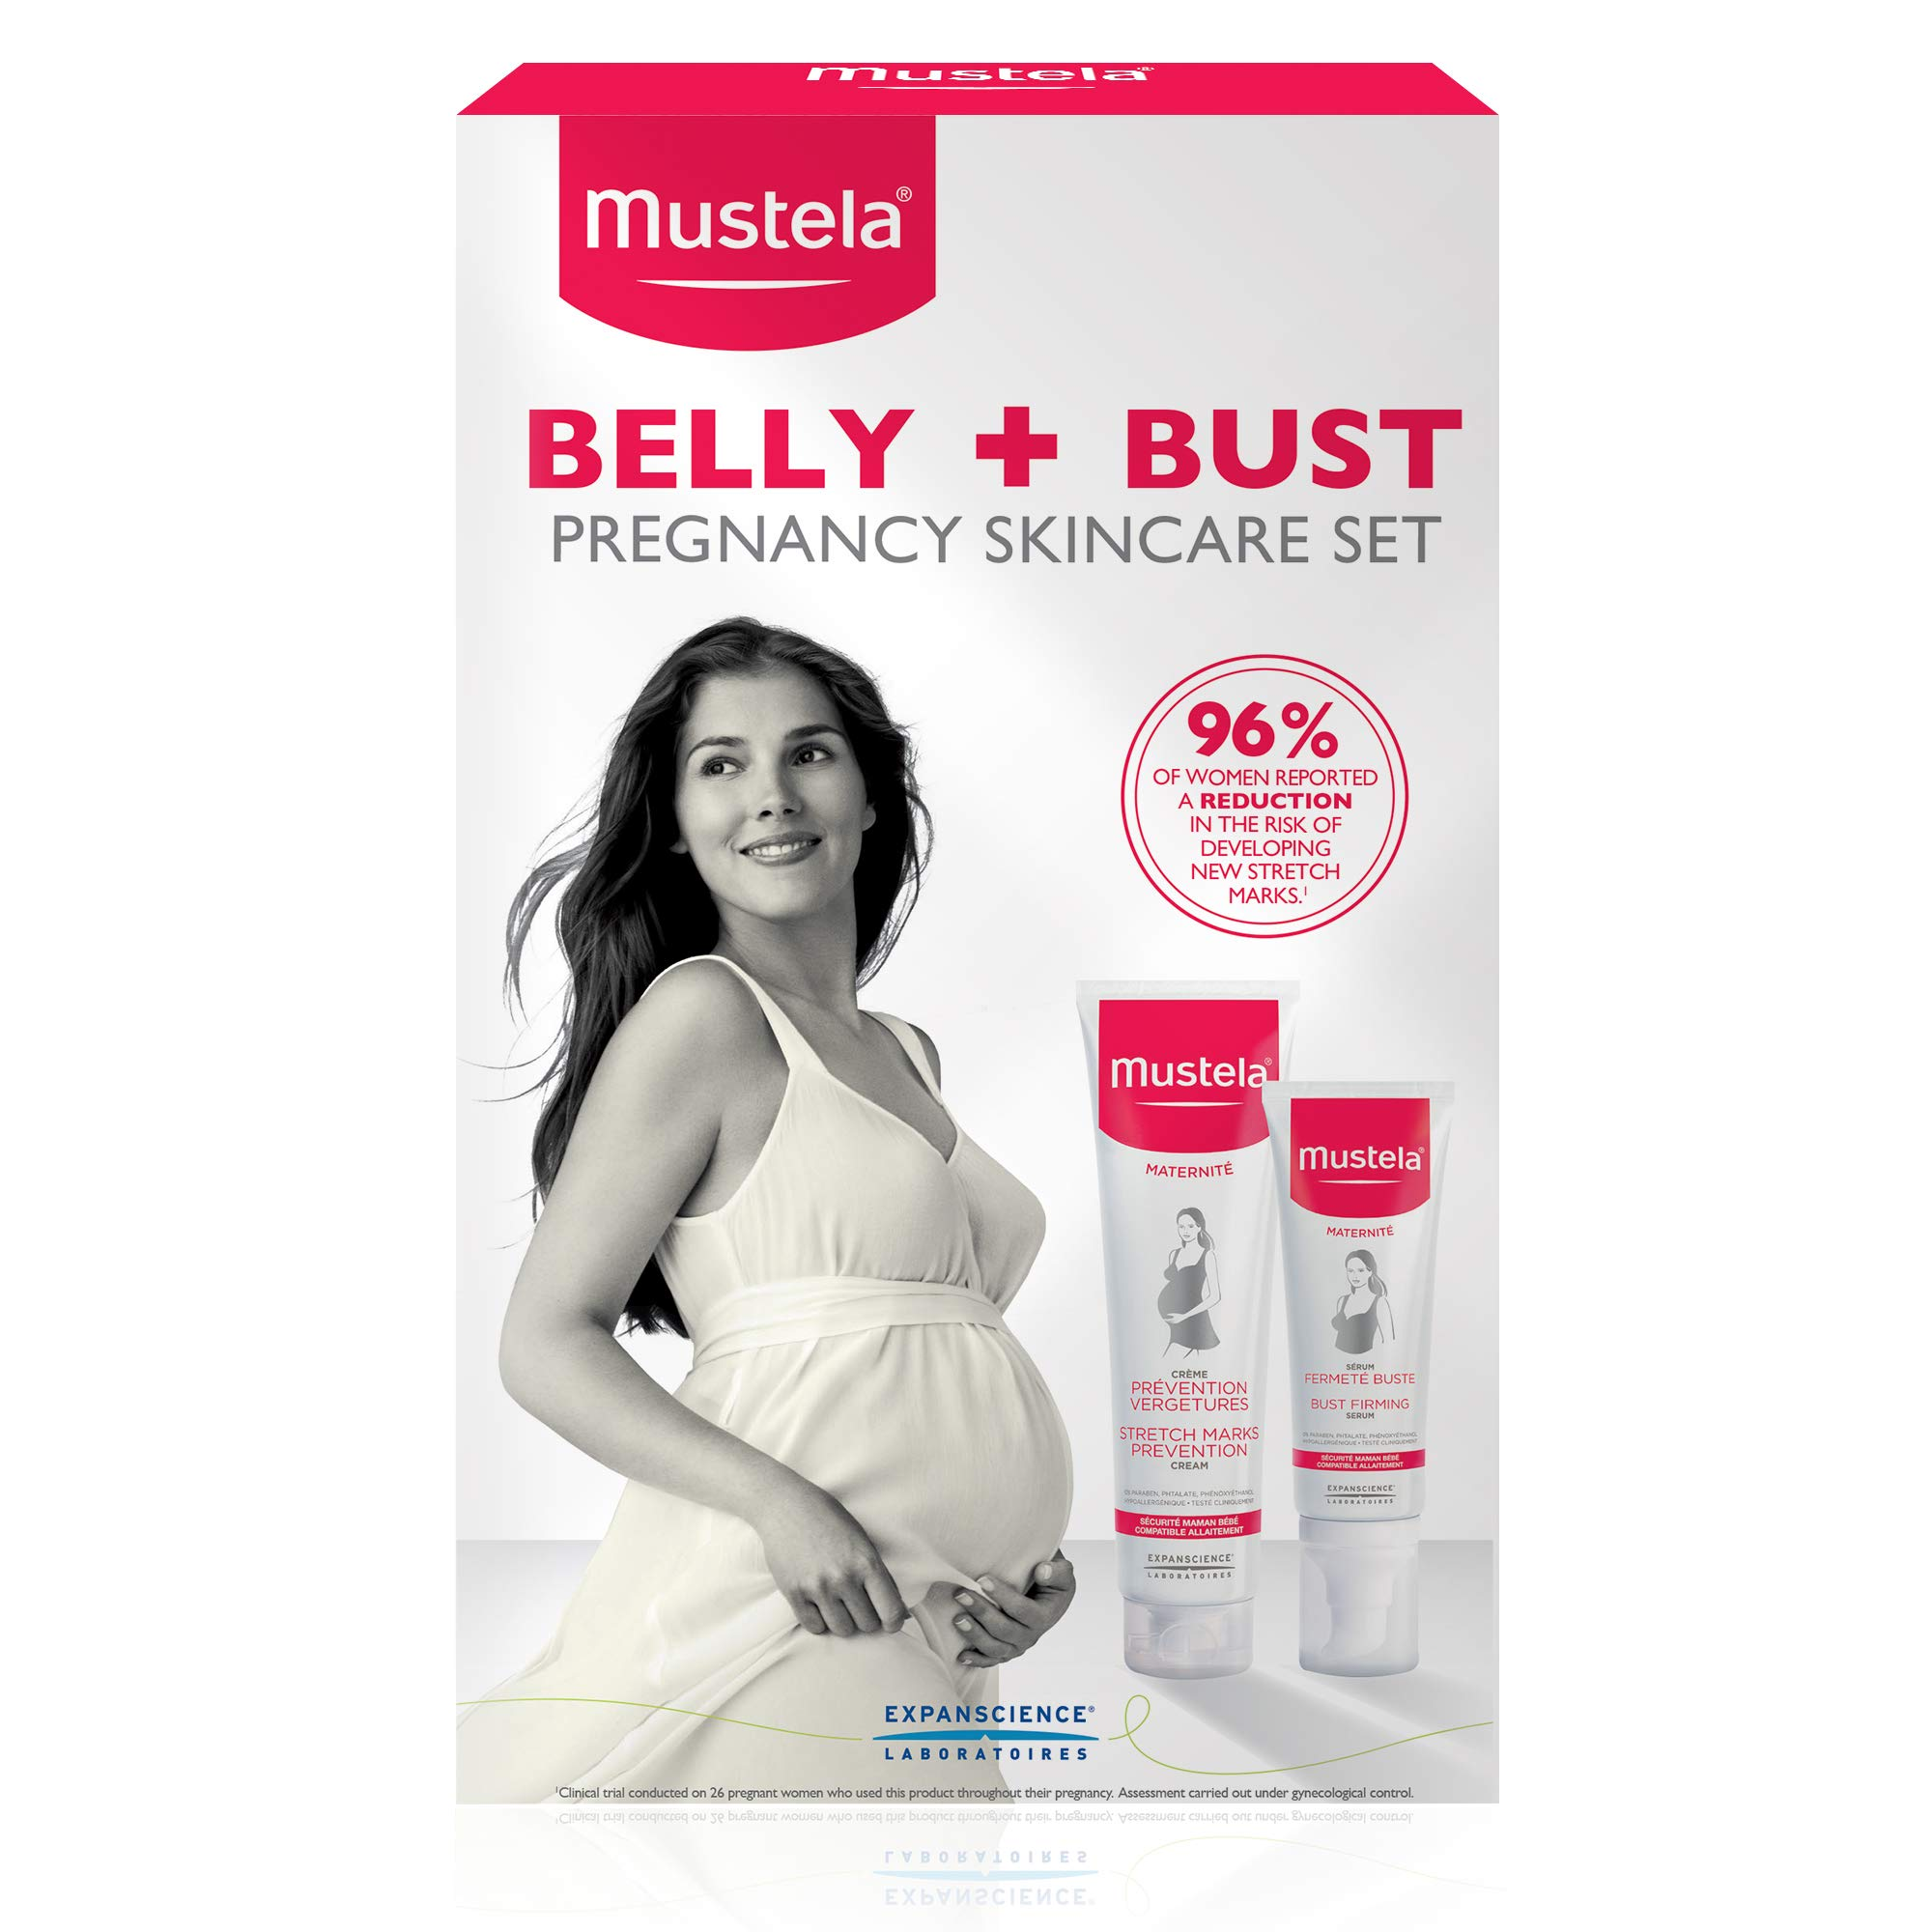 Mustela Belly & Bust Pregnancy Skincare Set, Stretch Marks Prevention Cream and Bust Firming Serum, with Natural Avocado Peptides, 2 Items by Mustela